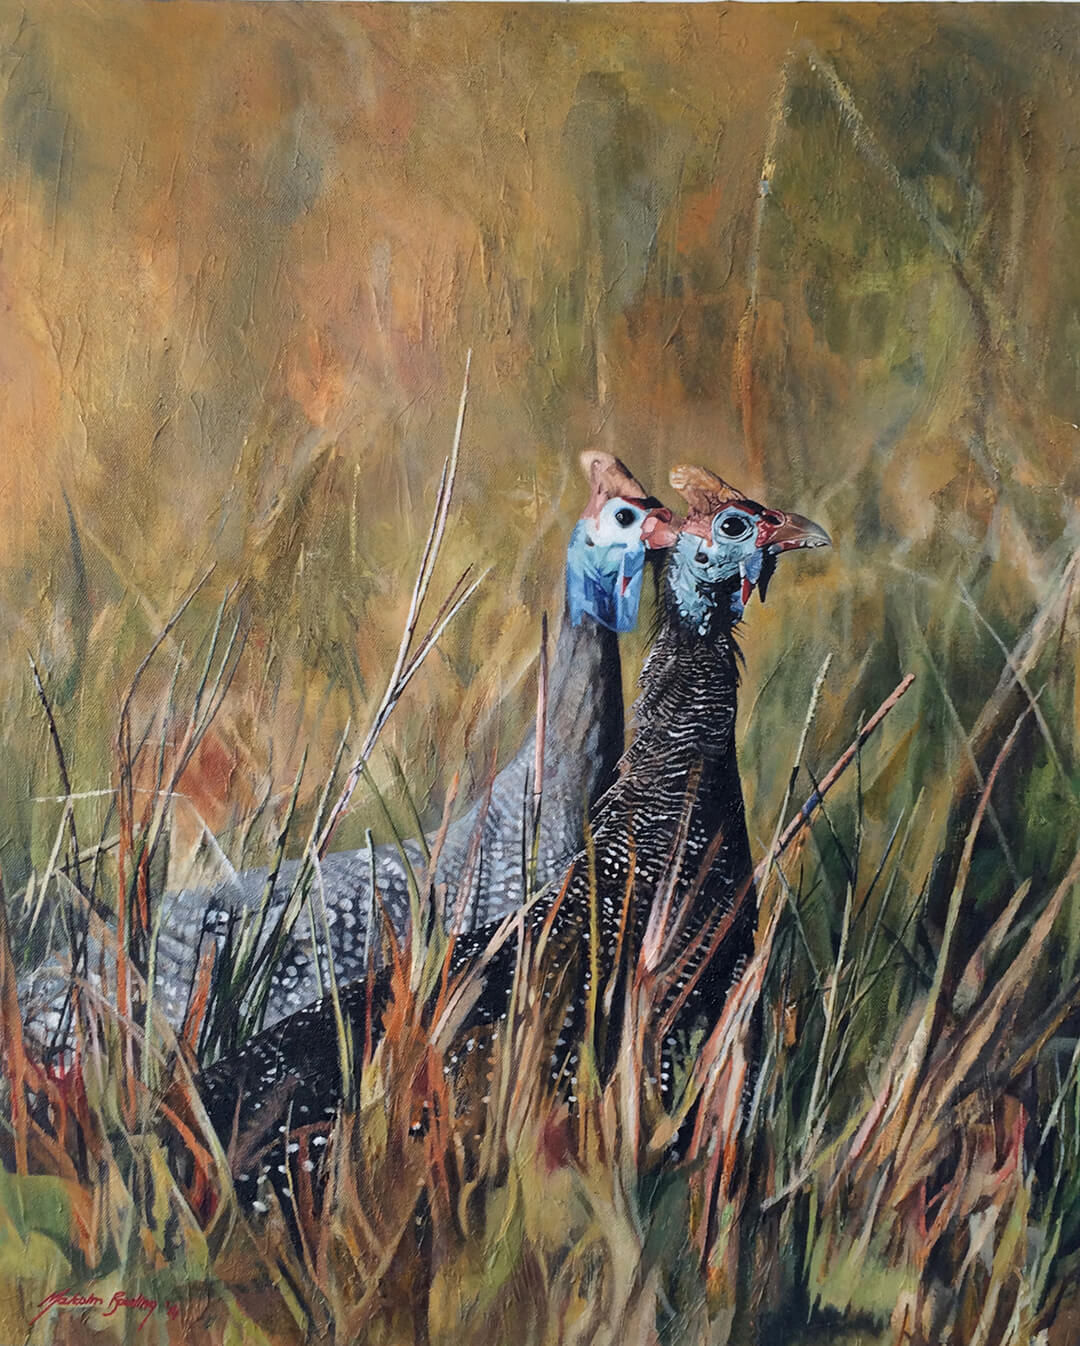 Guineafowl oil painting by Malcolm Bowling